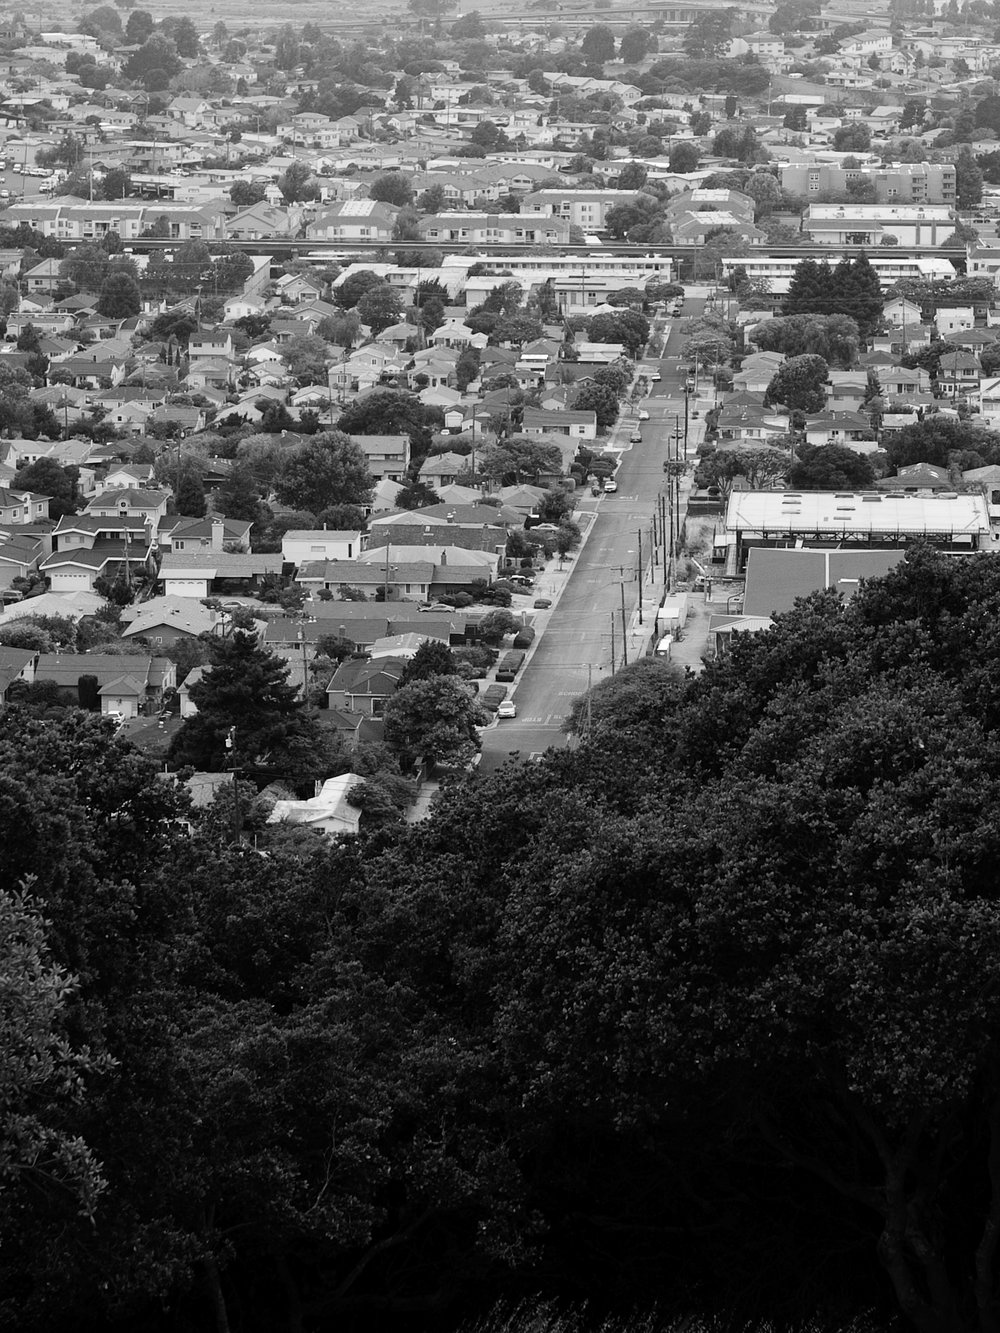 View of Donal Avenue from El Cerrito Hillside Natural Area